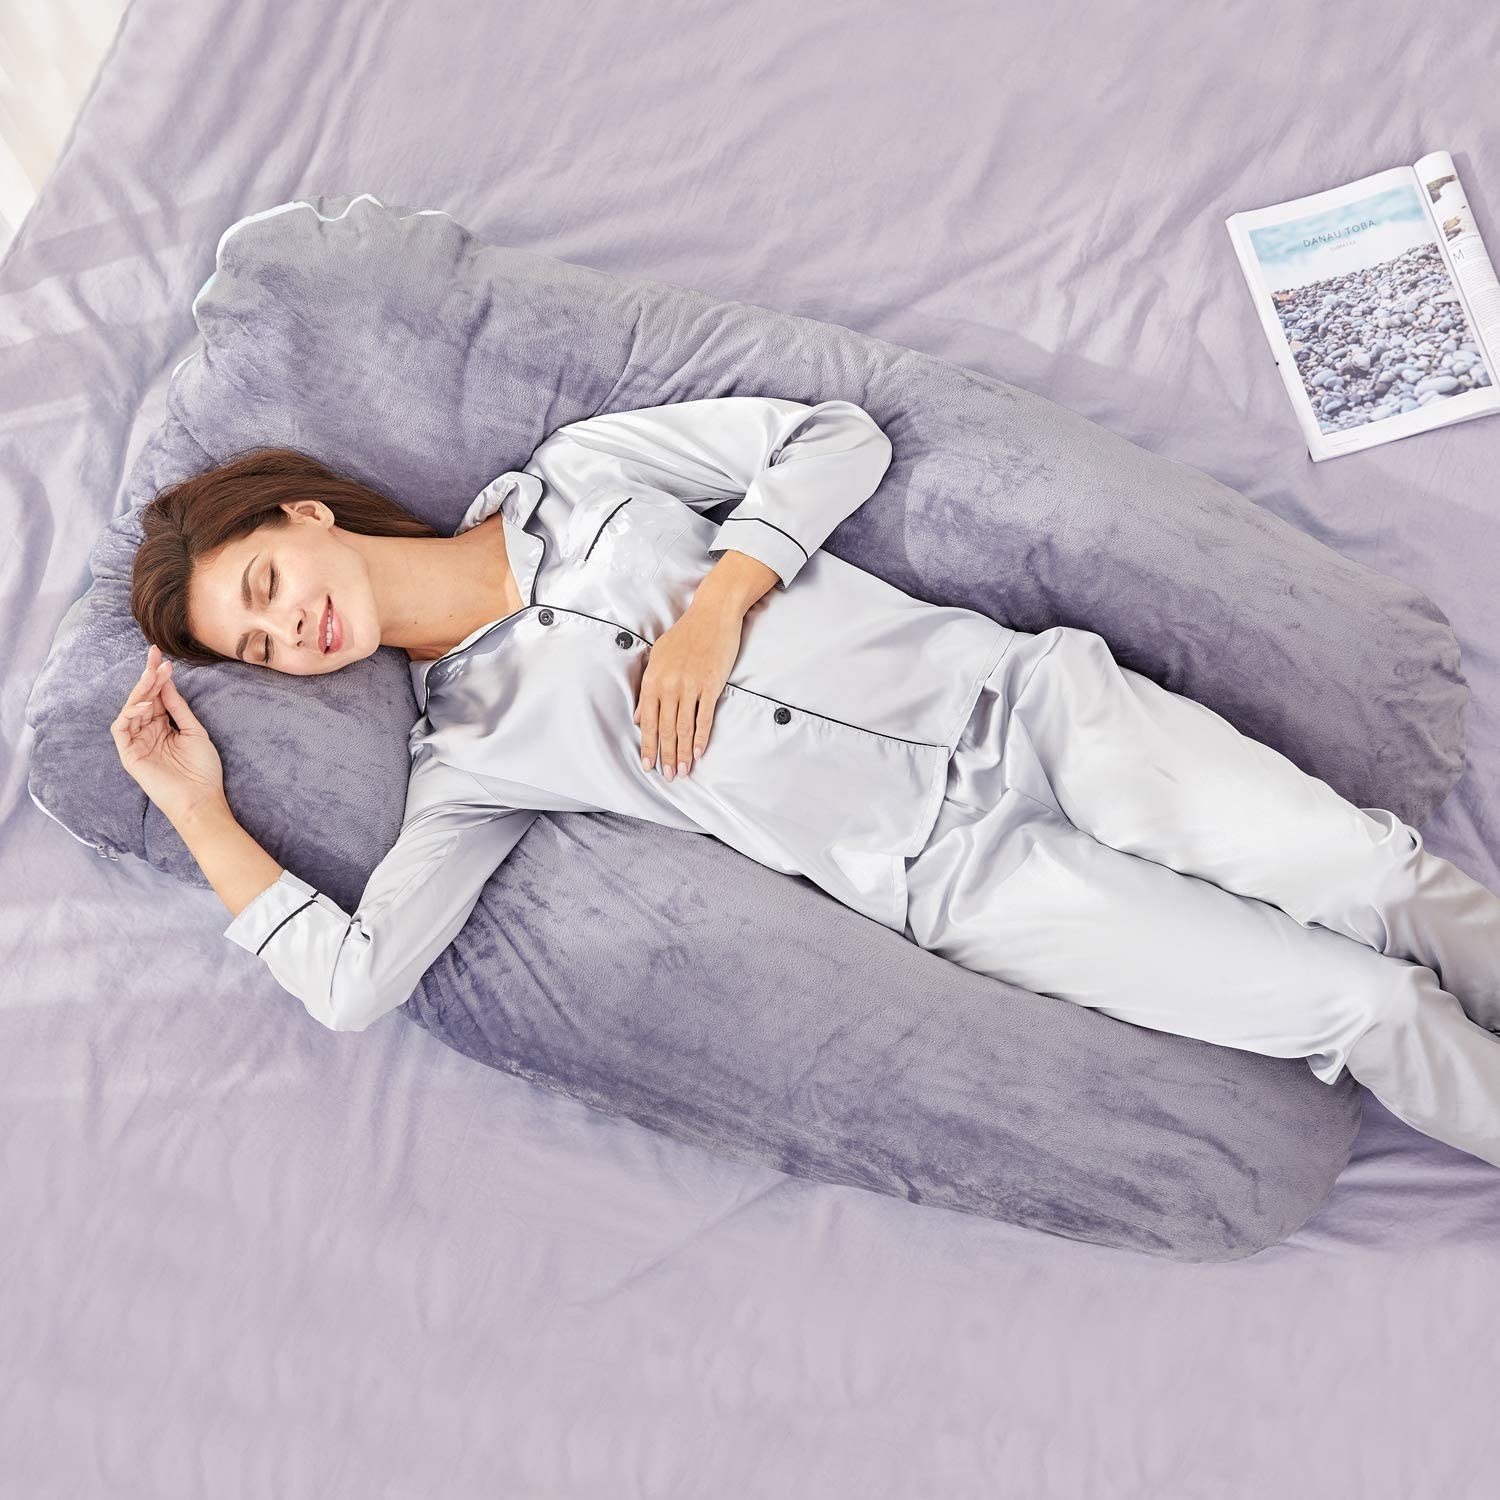 A person lies on a bed supported by a pillow that wraps around their body